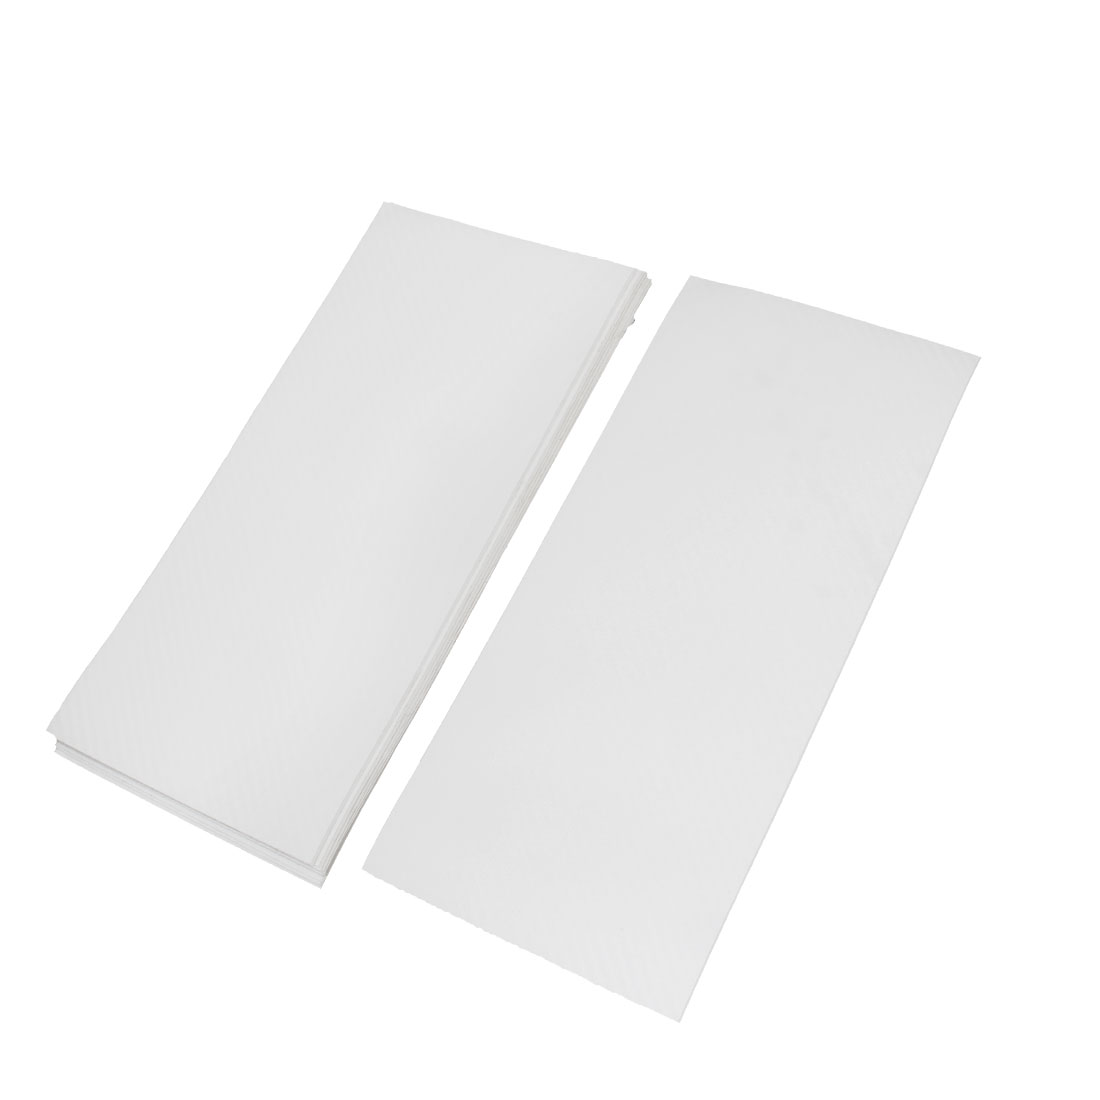 10pcs 300 x 134mm Self Adhesive Carbon Fiber Protective Film Sticker White for Car